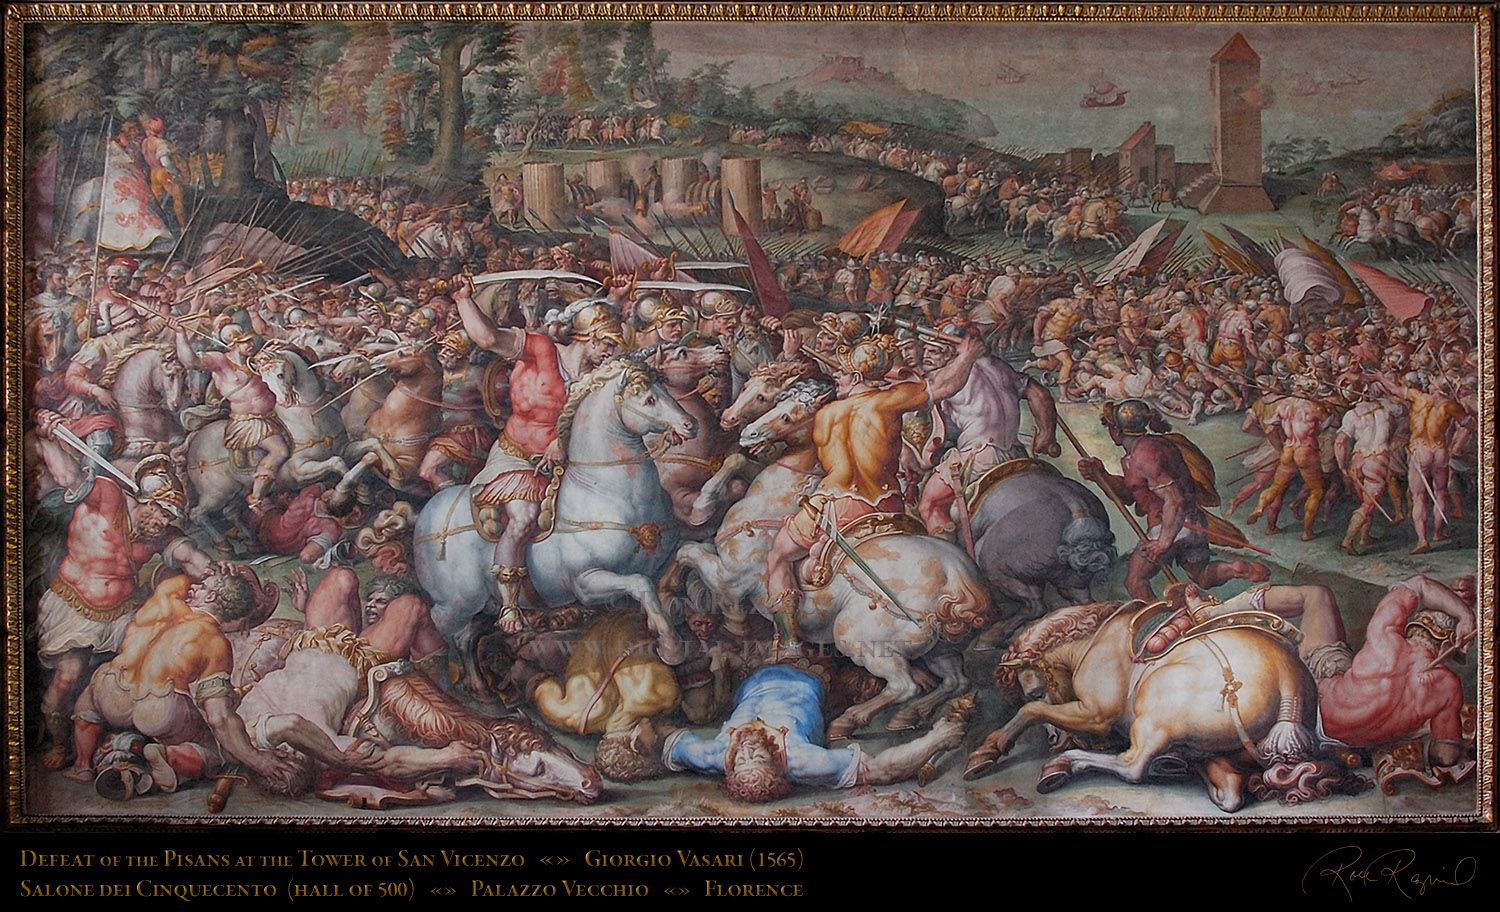 De battaglia di marciano van giorgio vasari blz 112 for Battle of marciano mural